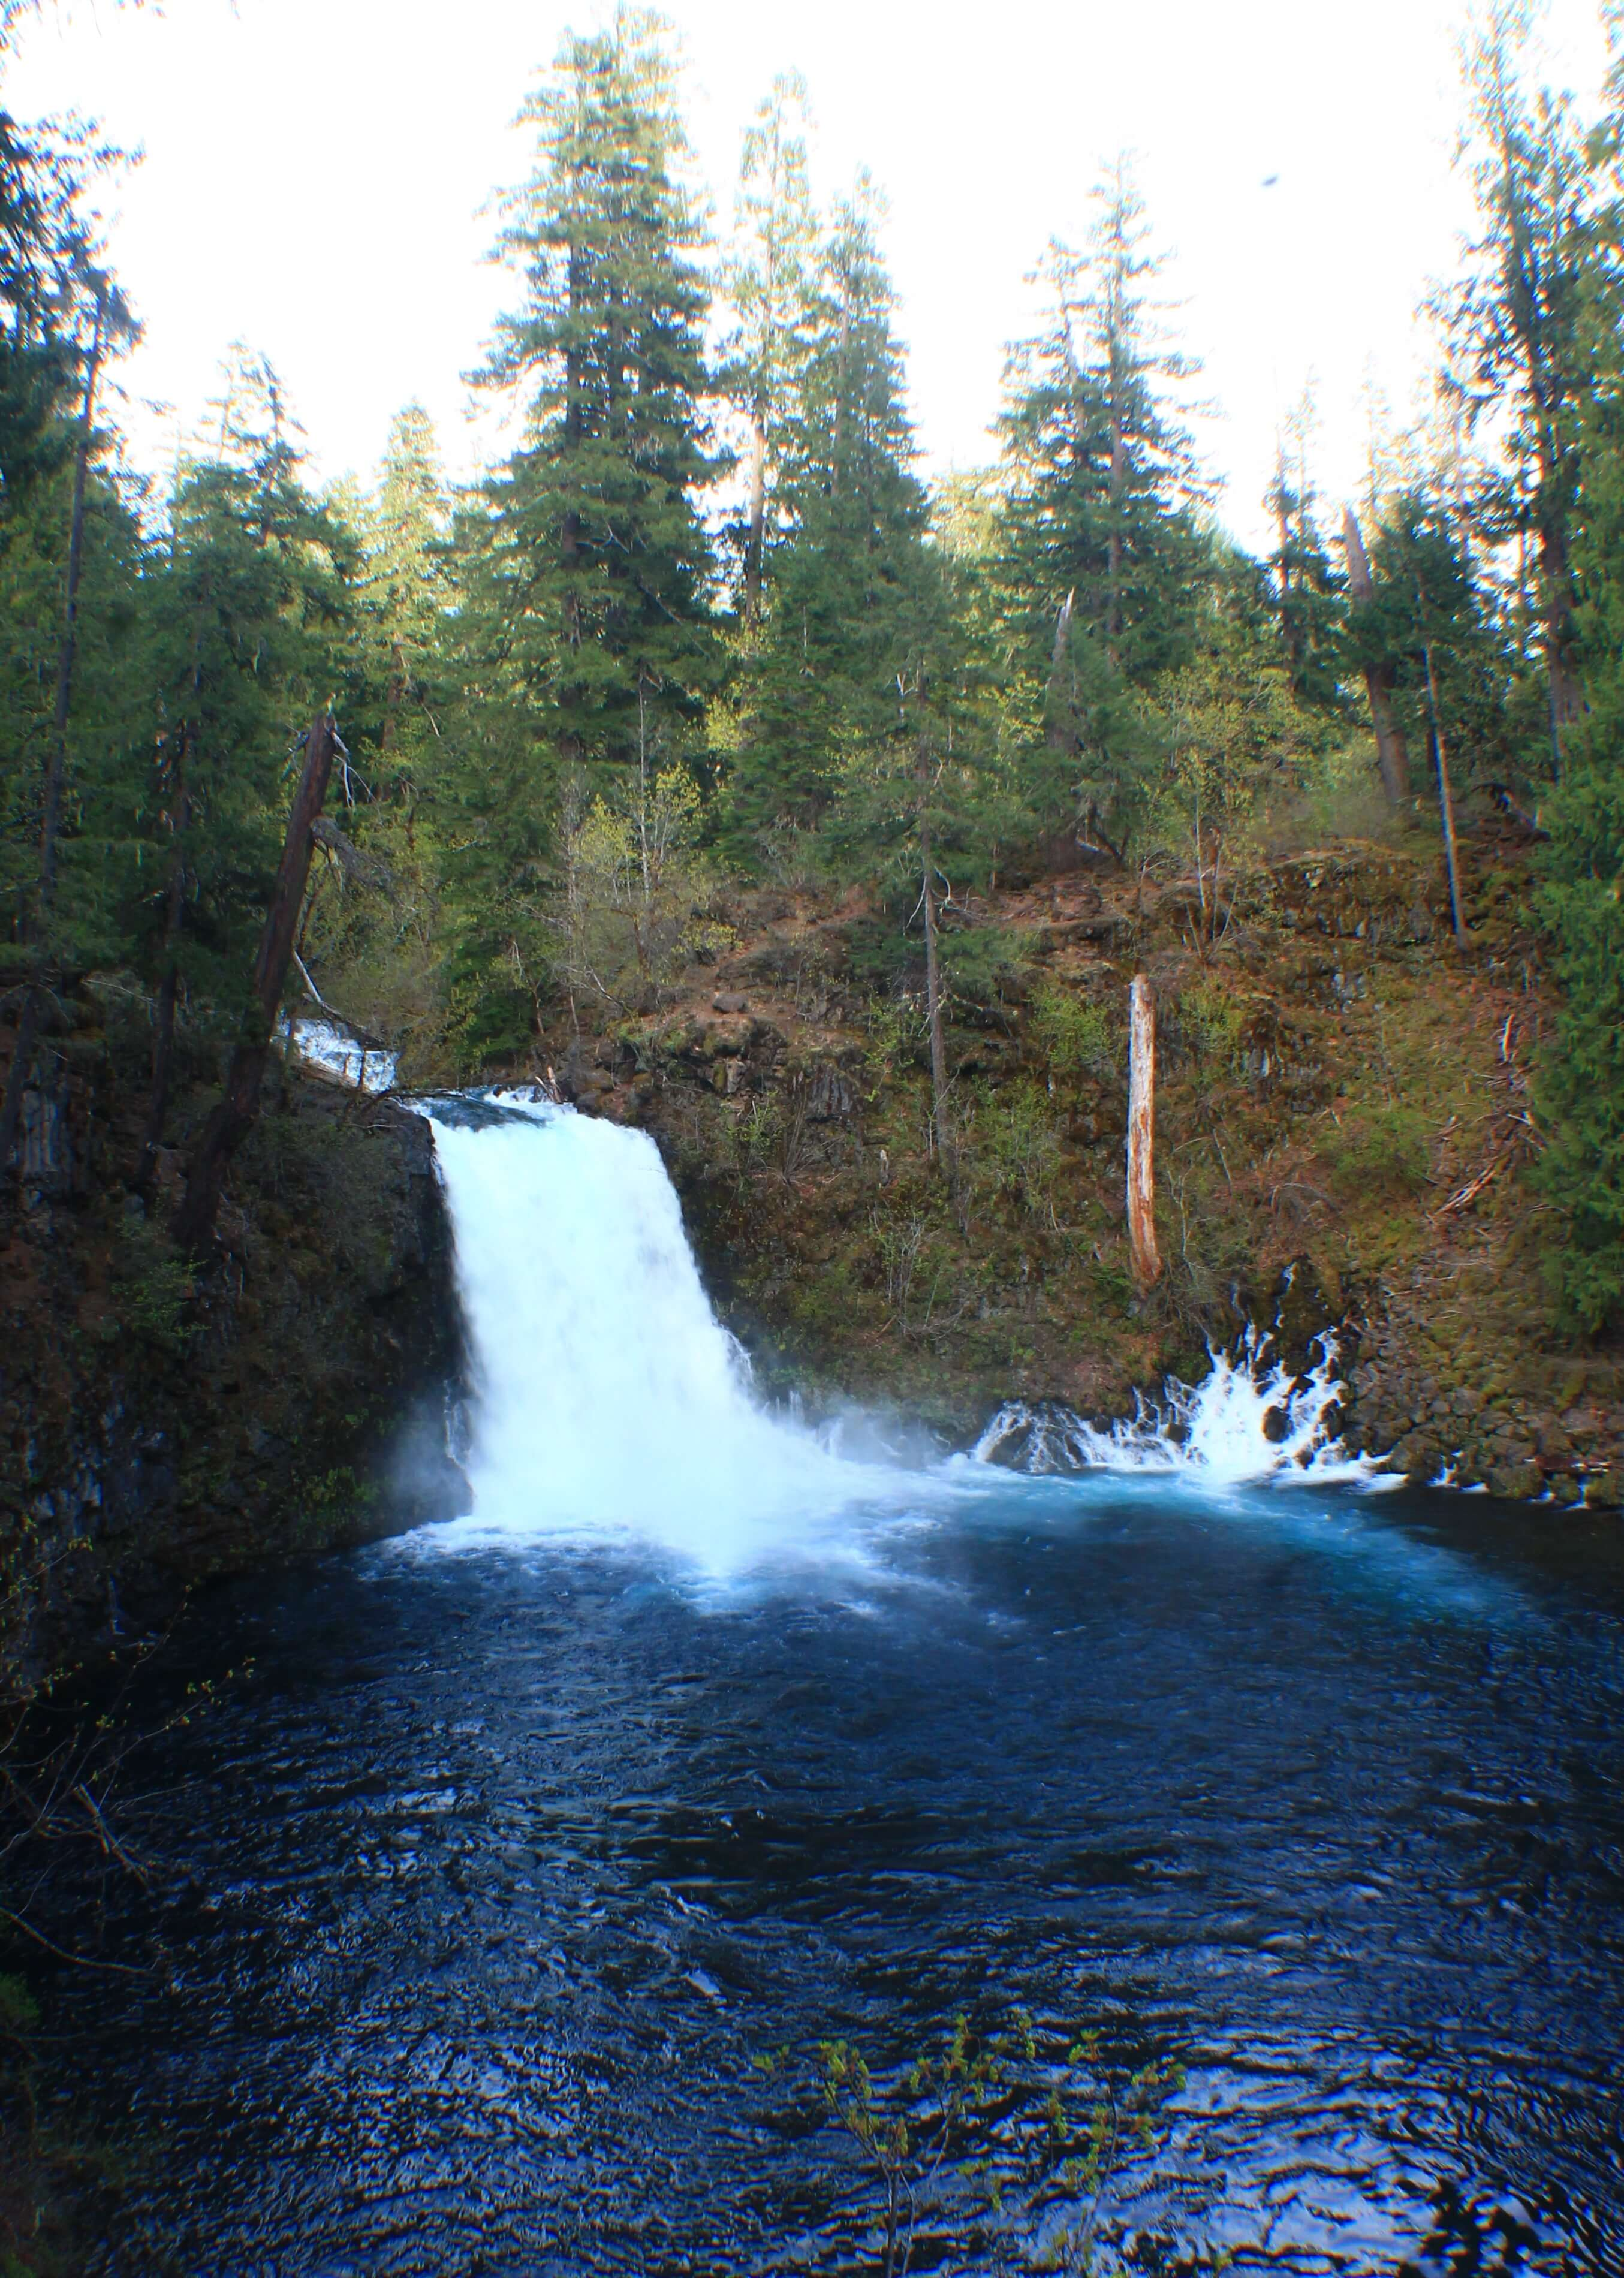 Tamoiltch Falls/Pools, 5 adventurous things to do on the Mackenzie river trail, oregon